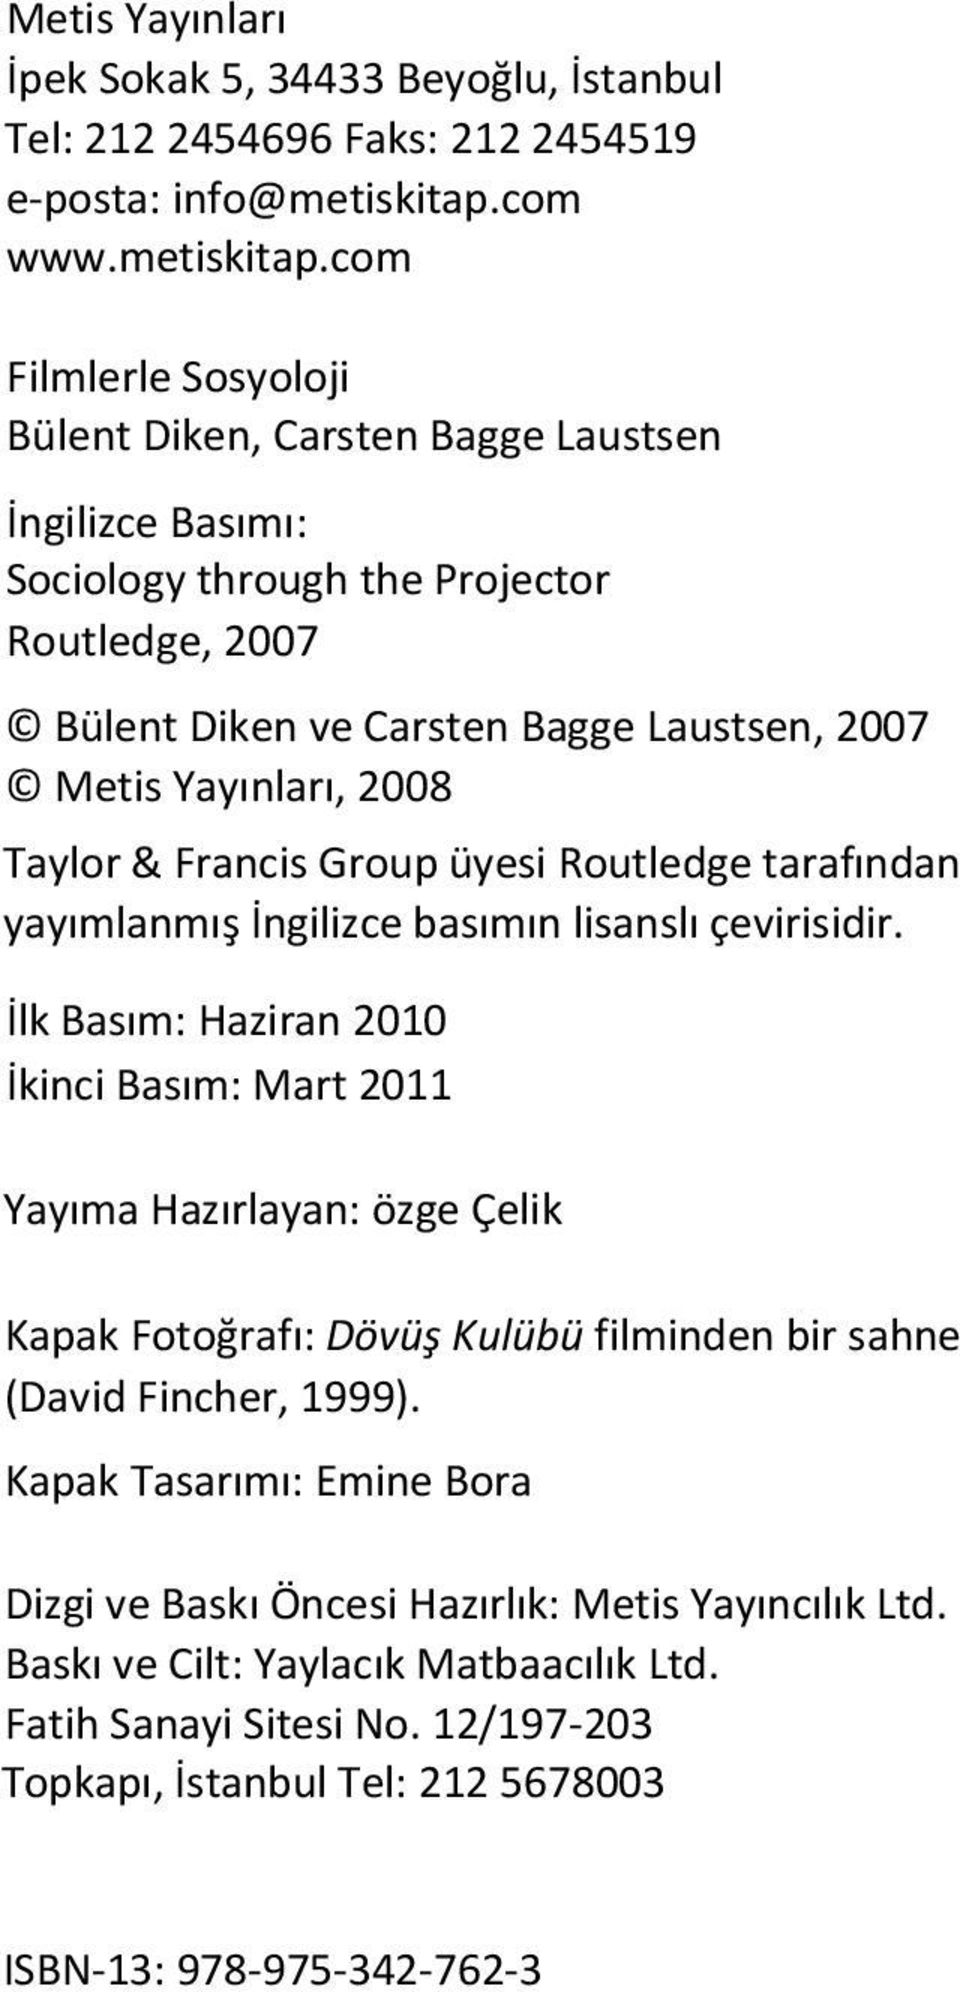 com Filmlerle Sosyoloji Bülent Diken, Carsten Bagge Laustsen İngilizce Basımı: Sociology through the Projector Routledge, 2007 Bülent Diken ve Carsten Bagge Laustsen, 2007 Metis Yayınları, 2008